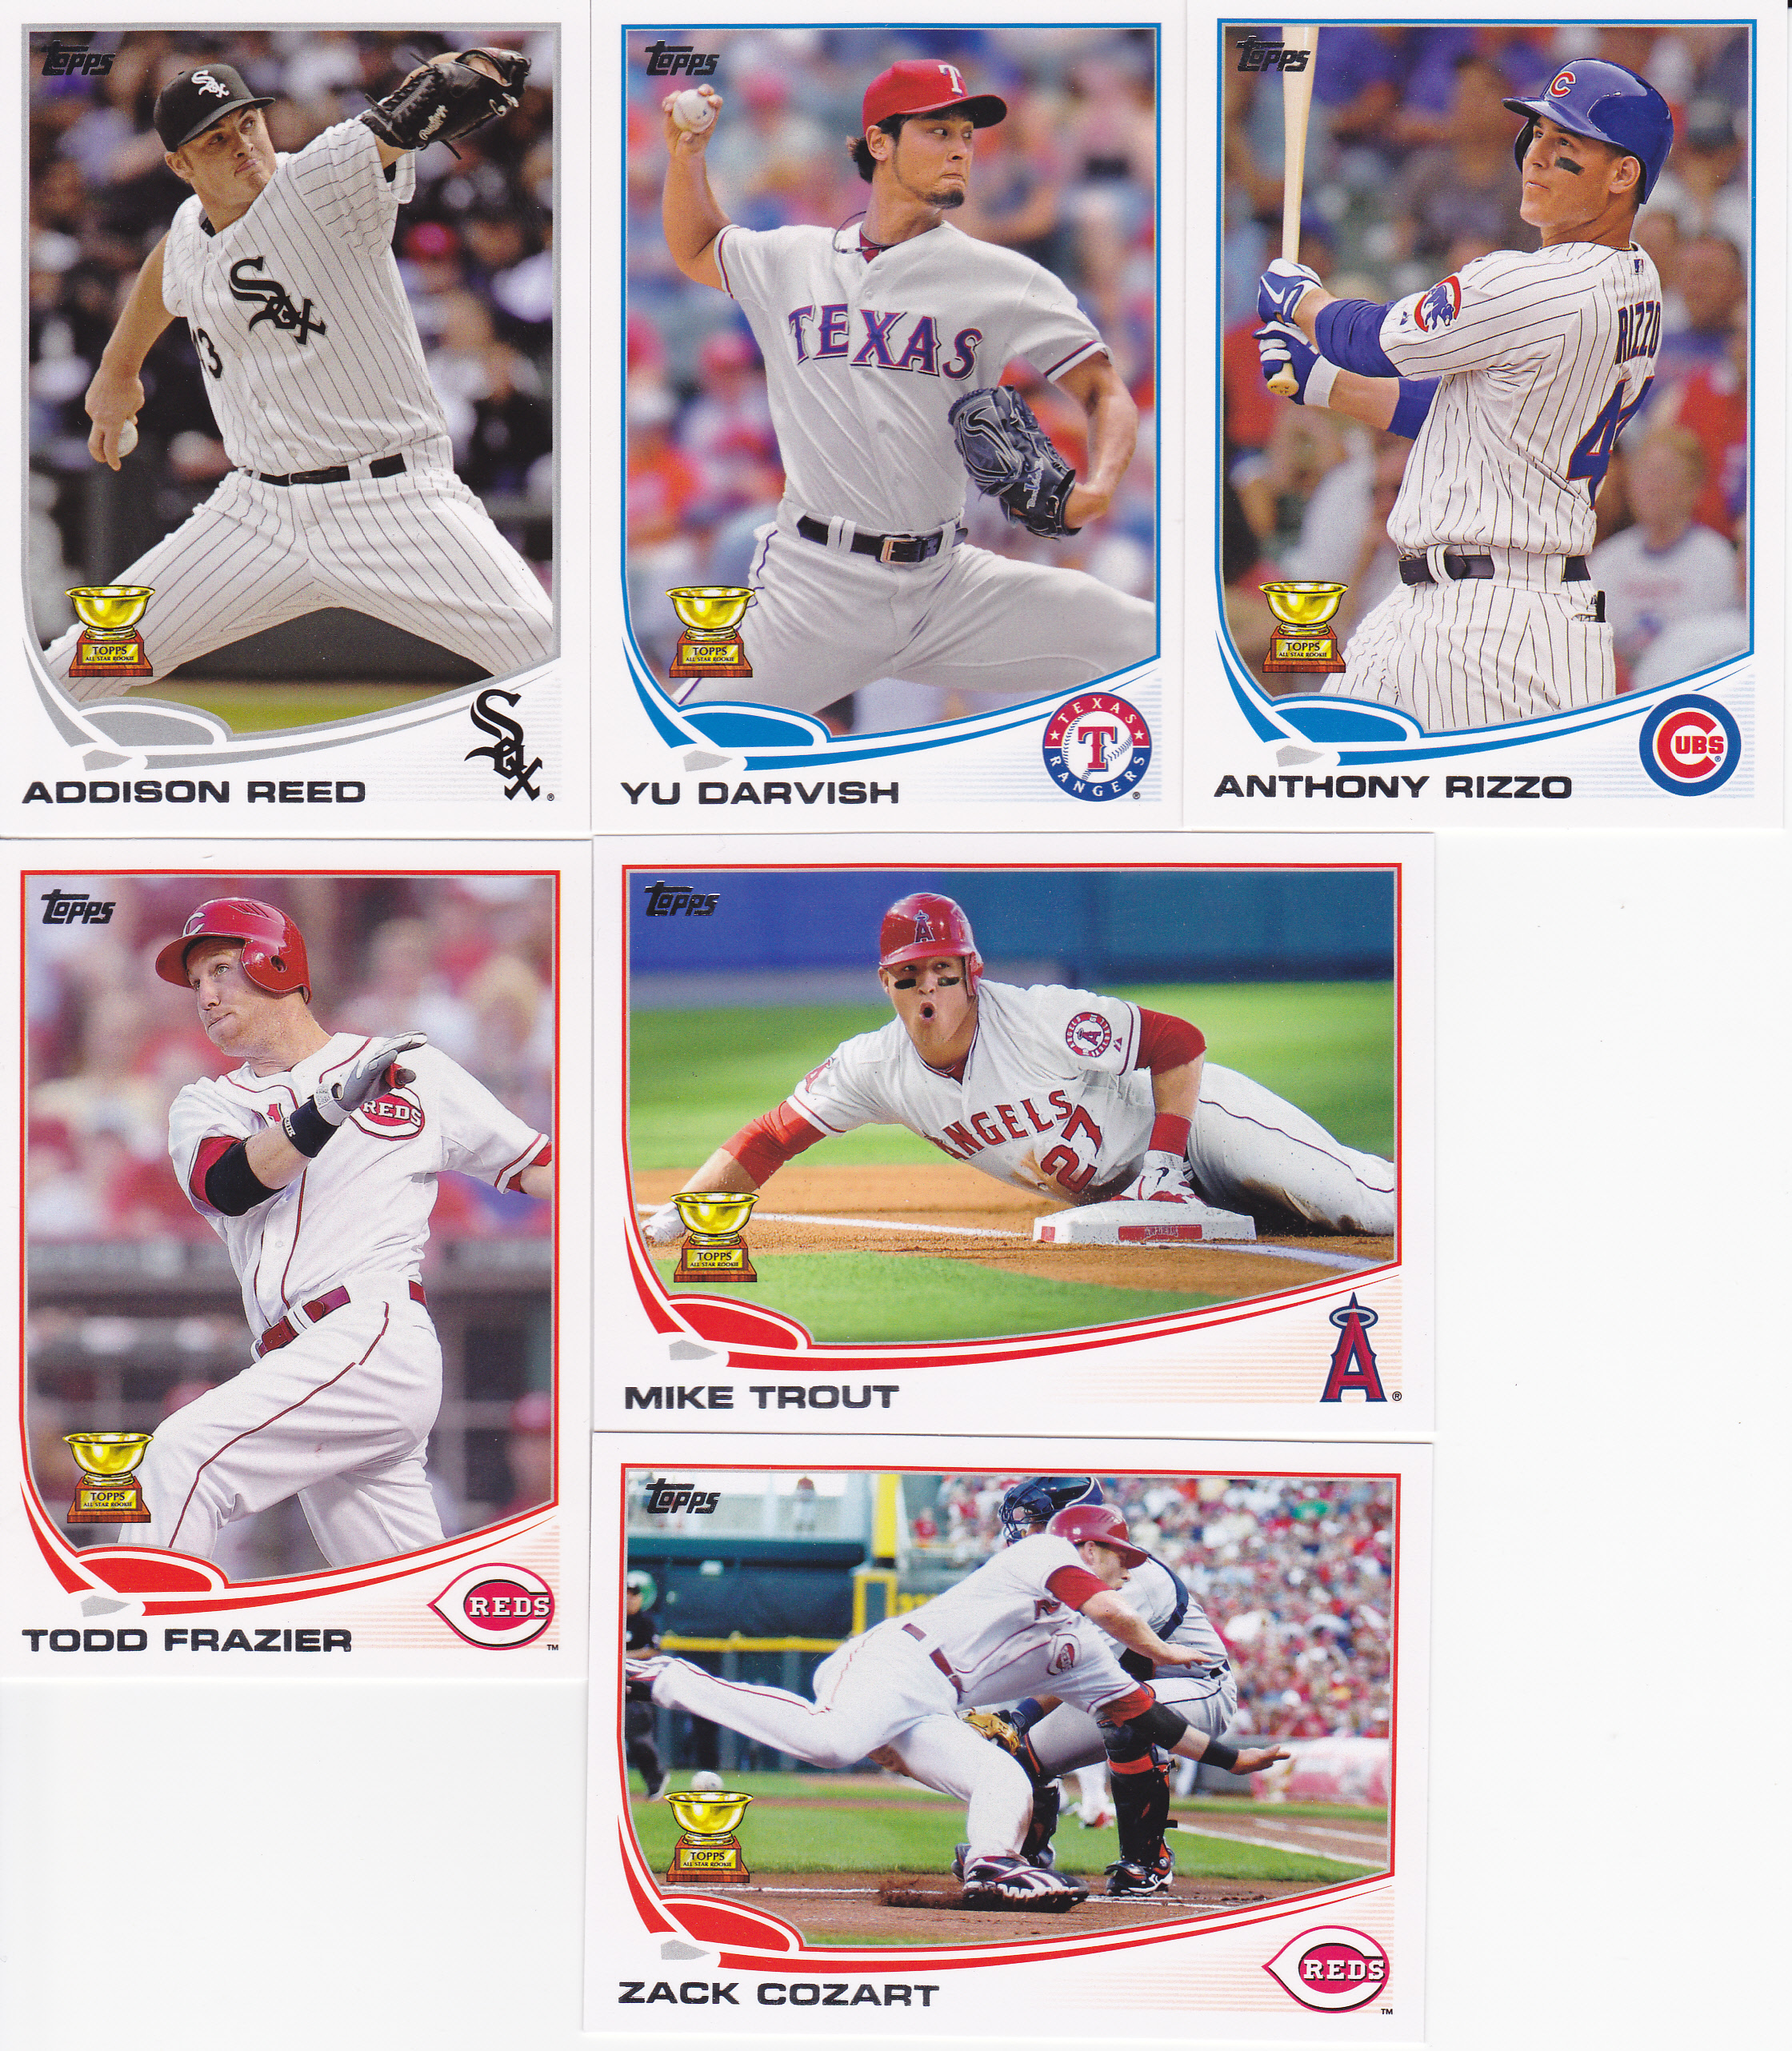 2013 Topps Series 1 Base Cards Lifetime Topps Project